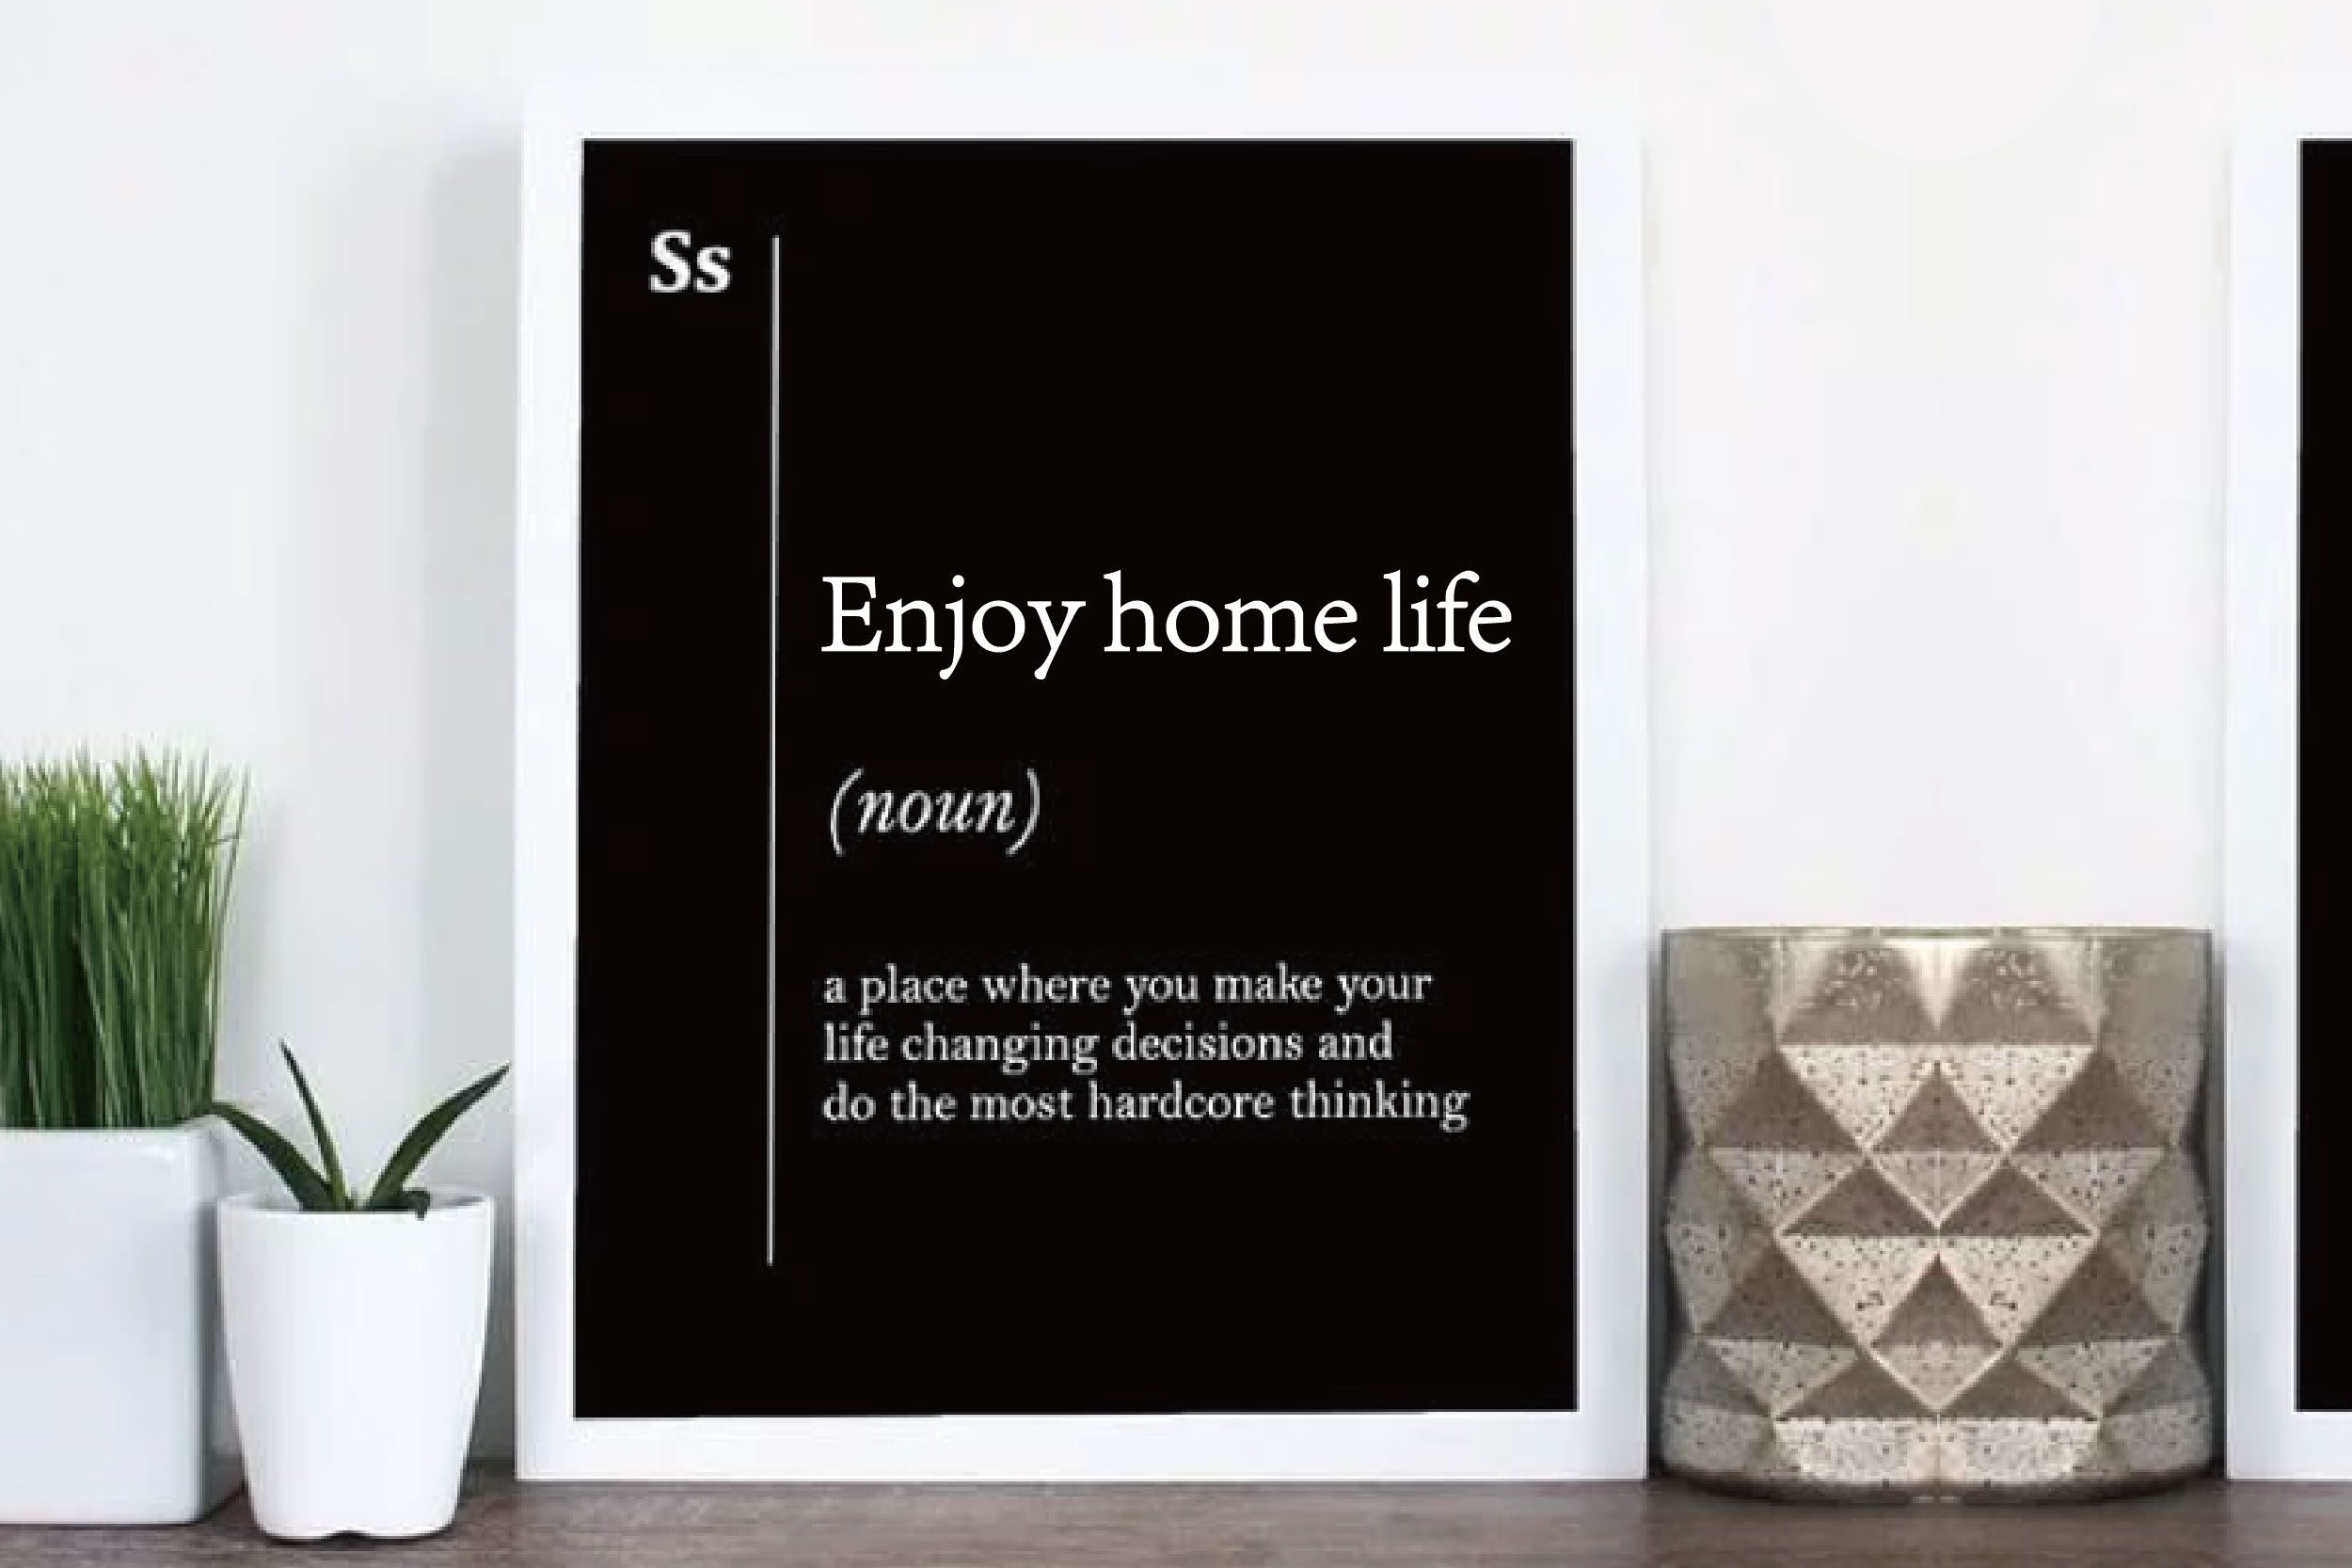 Enjoy the perfect home life experience, get comfortable enjoyment!